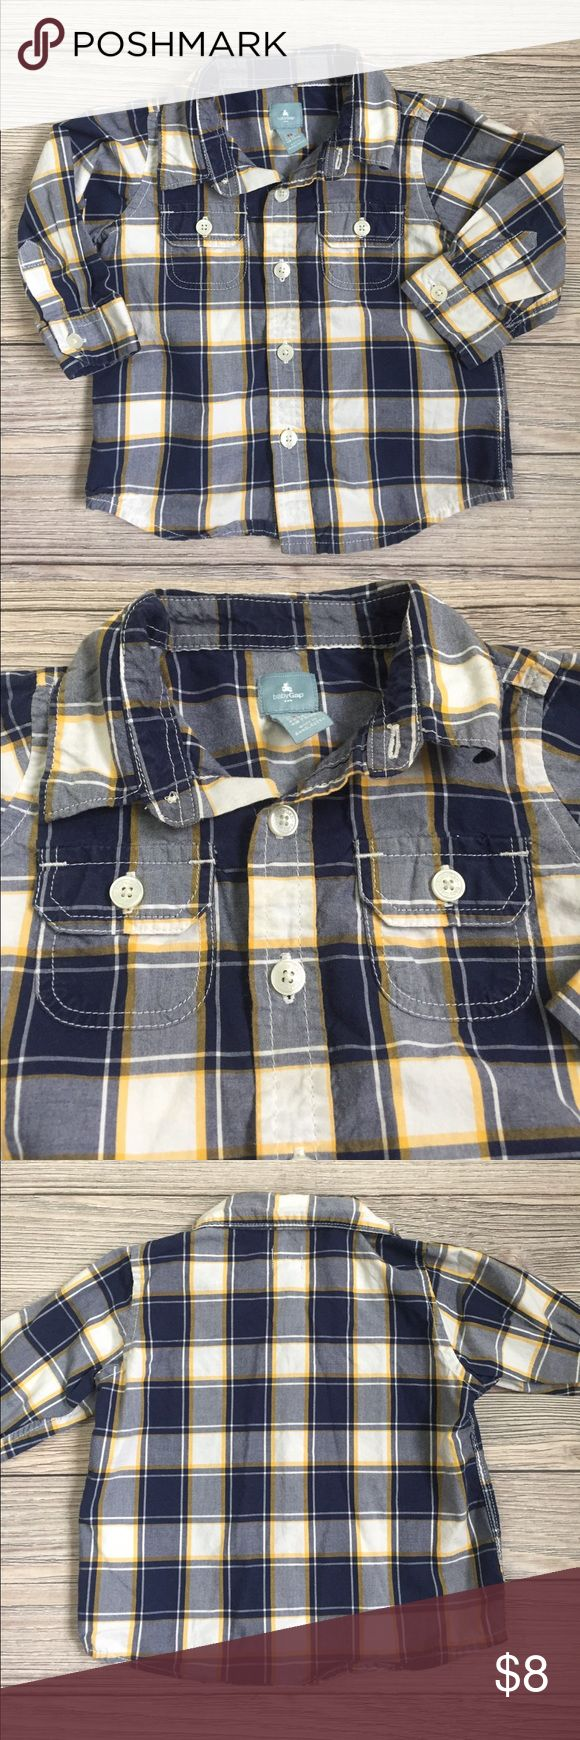 GAP Button Down Shirt Baby GAP Boys Plaid Button Down shirt.  Purchased from the GAP OUTLET.  Excellent condition.  Smoke free/pet free home.  Bundle and save.  Check out my other GAP listings GAP Shirts & Tops Button Down Shirts